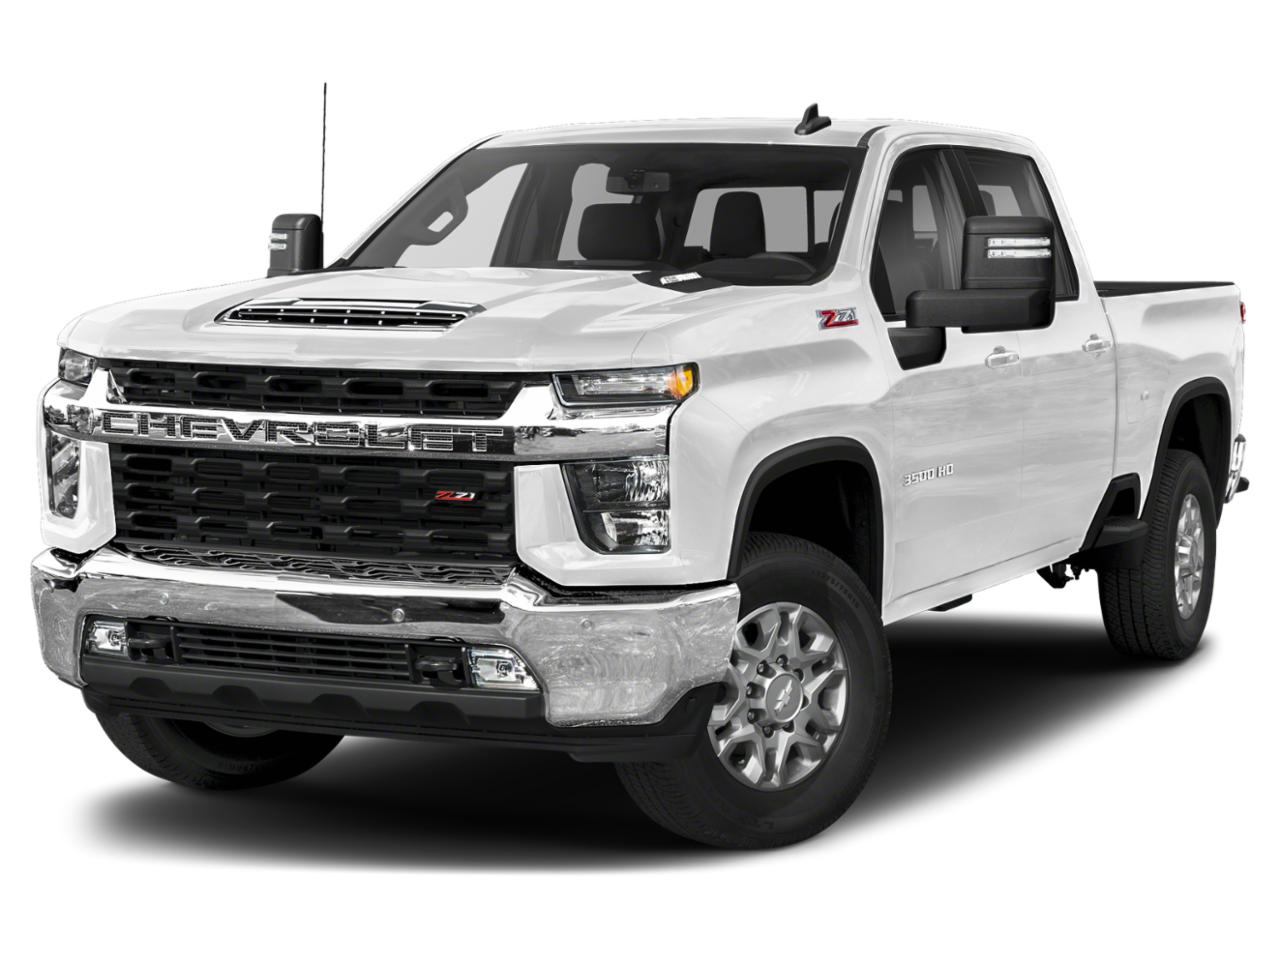 2020 Chevrolet Silverado 3500HD Vehicle Photo in Greensboro, NC 27405